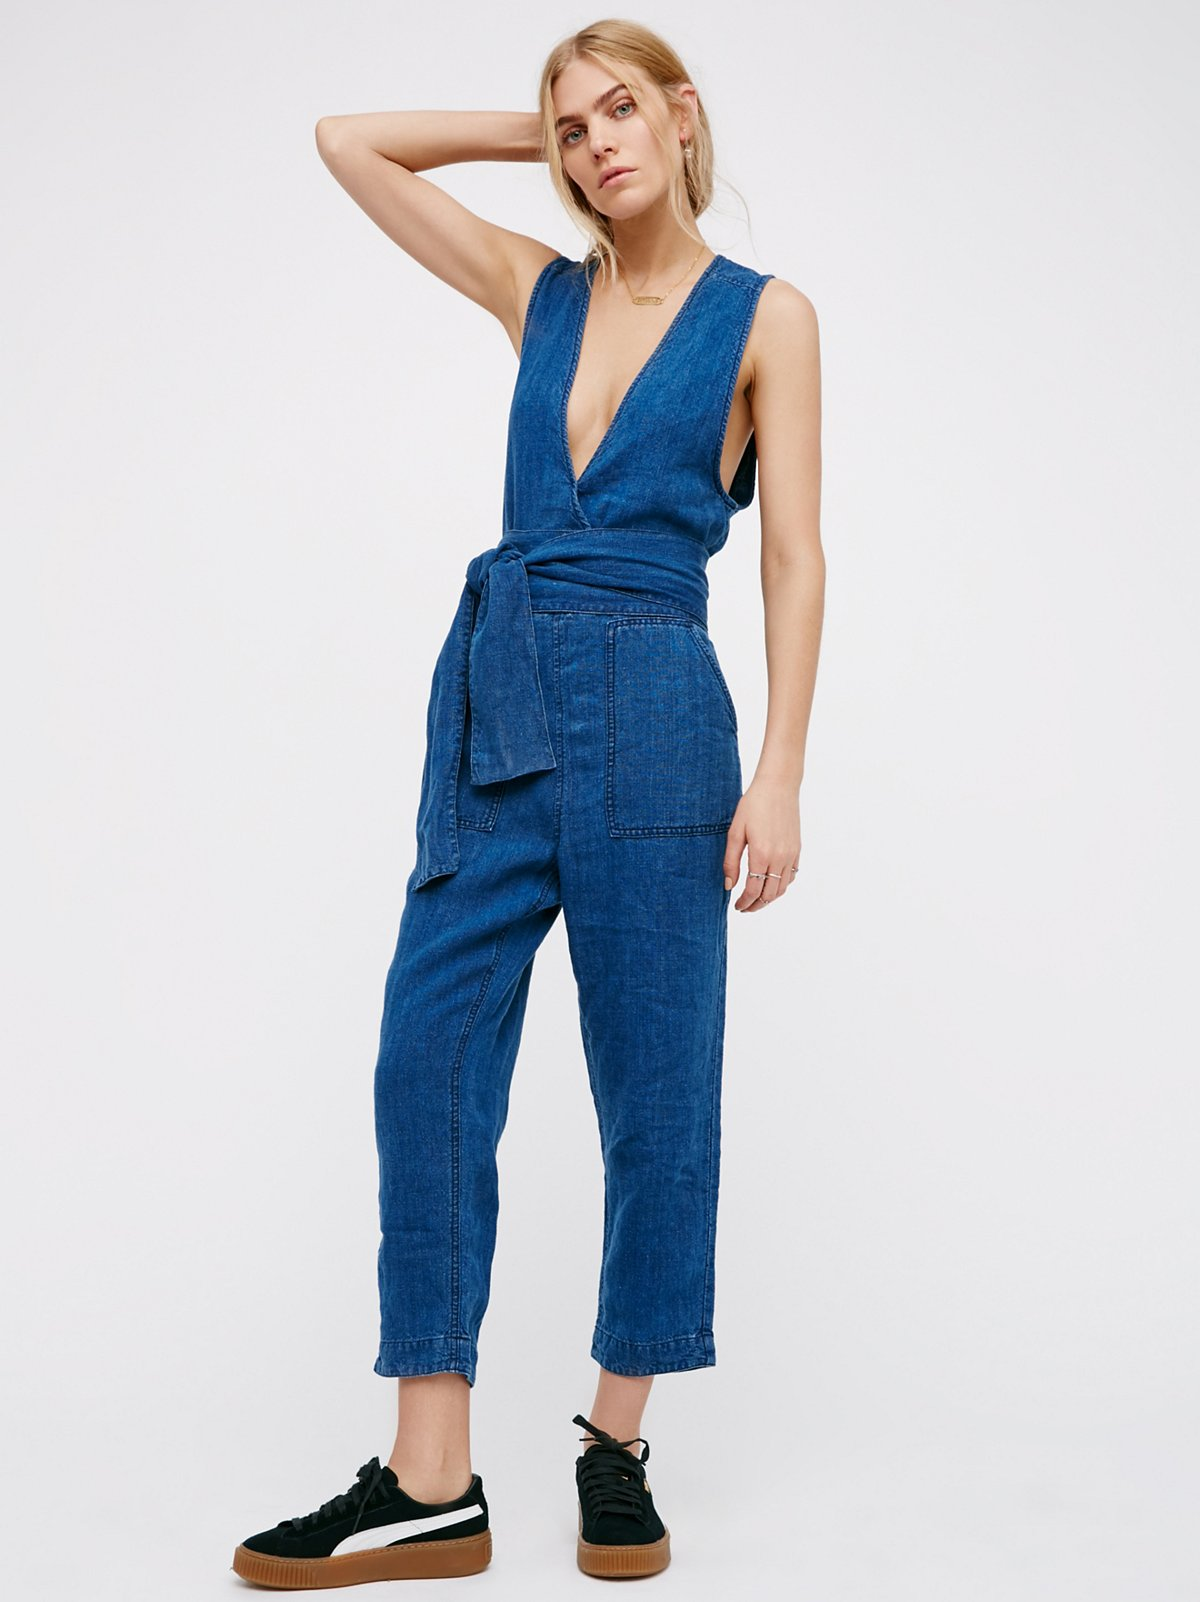 Free-People-Denim-Overalls.jpg